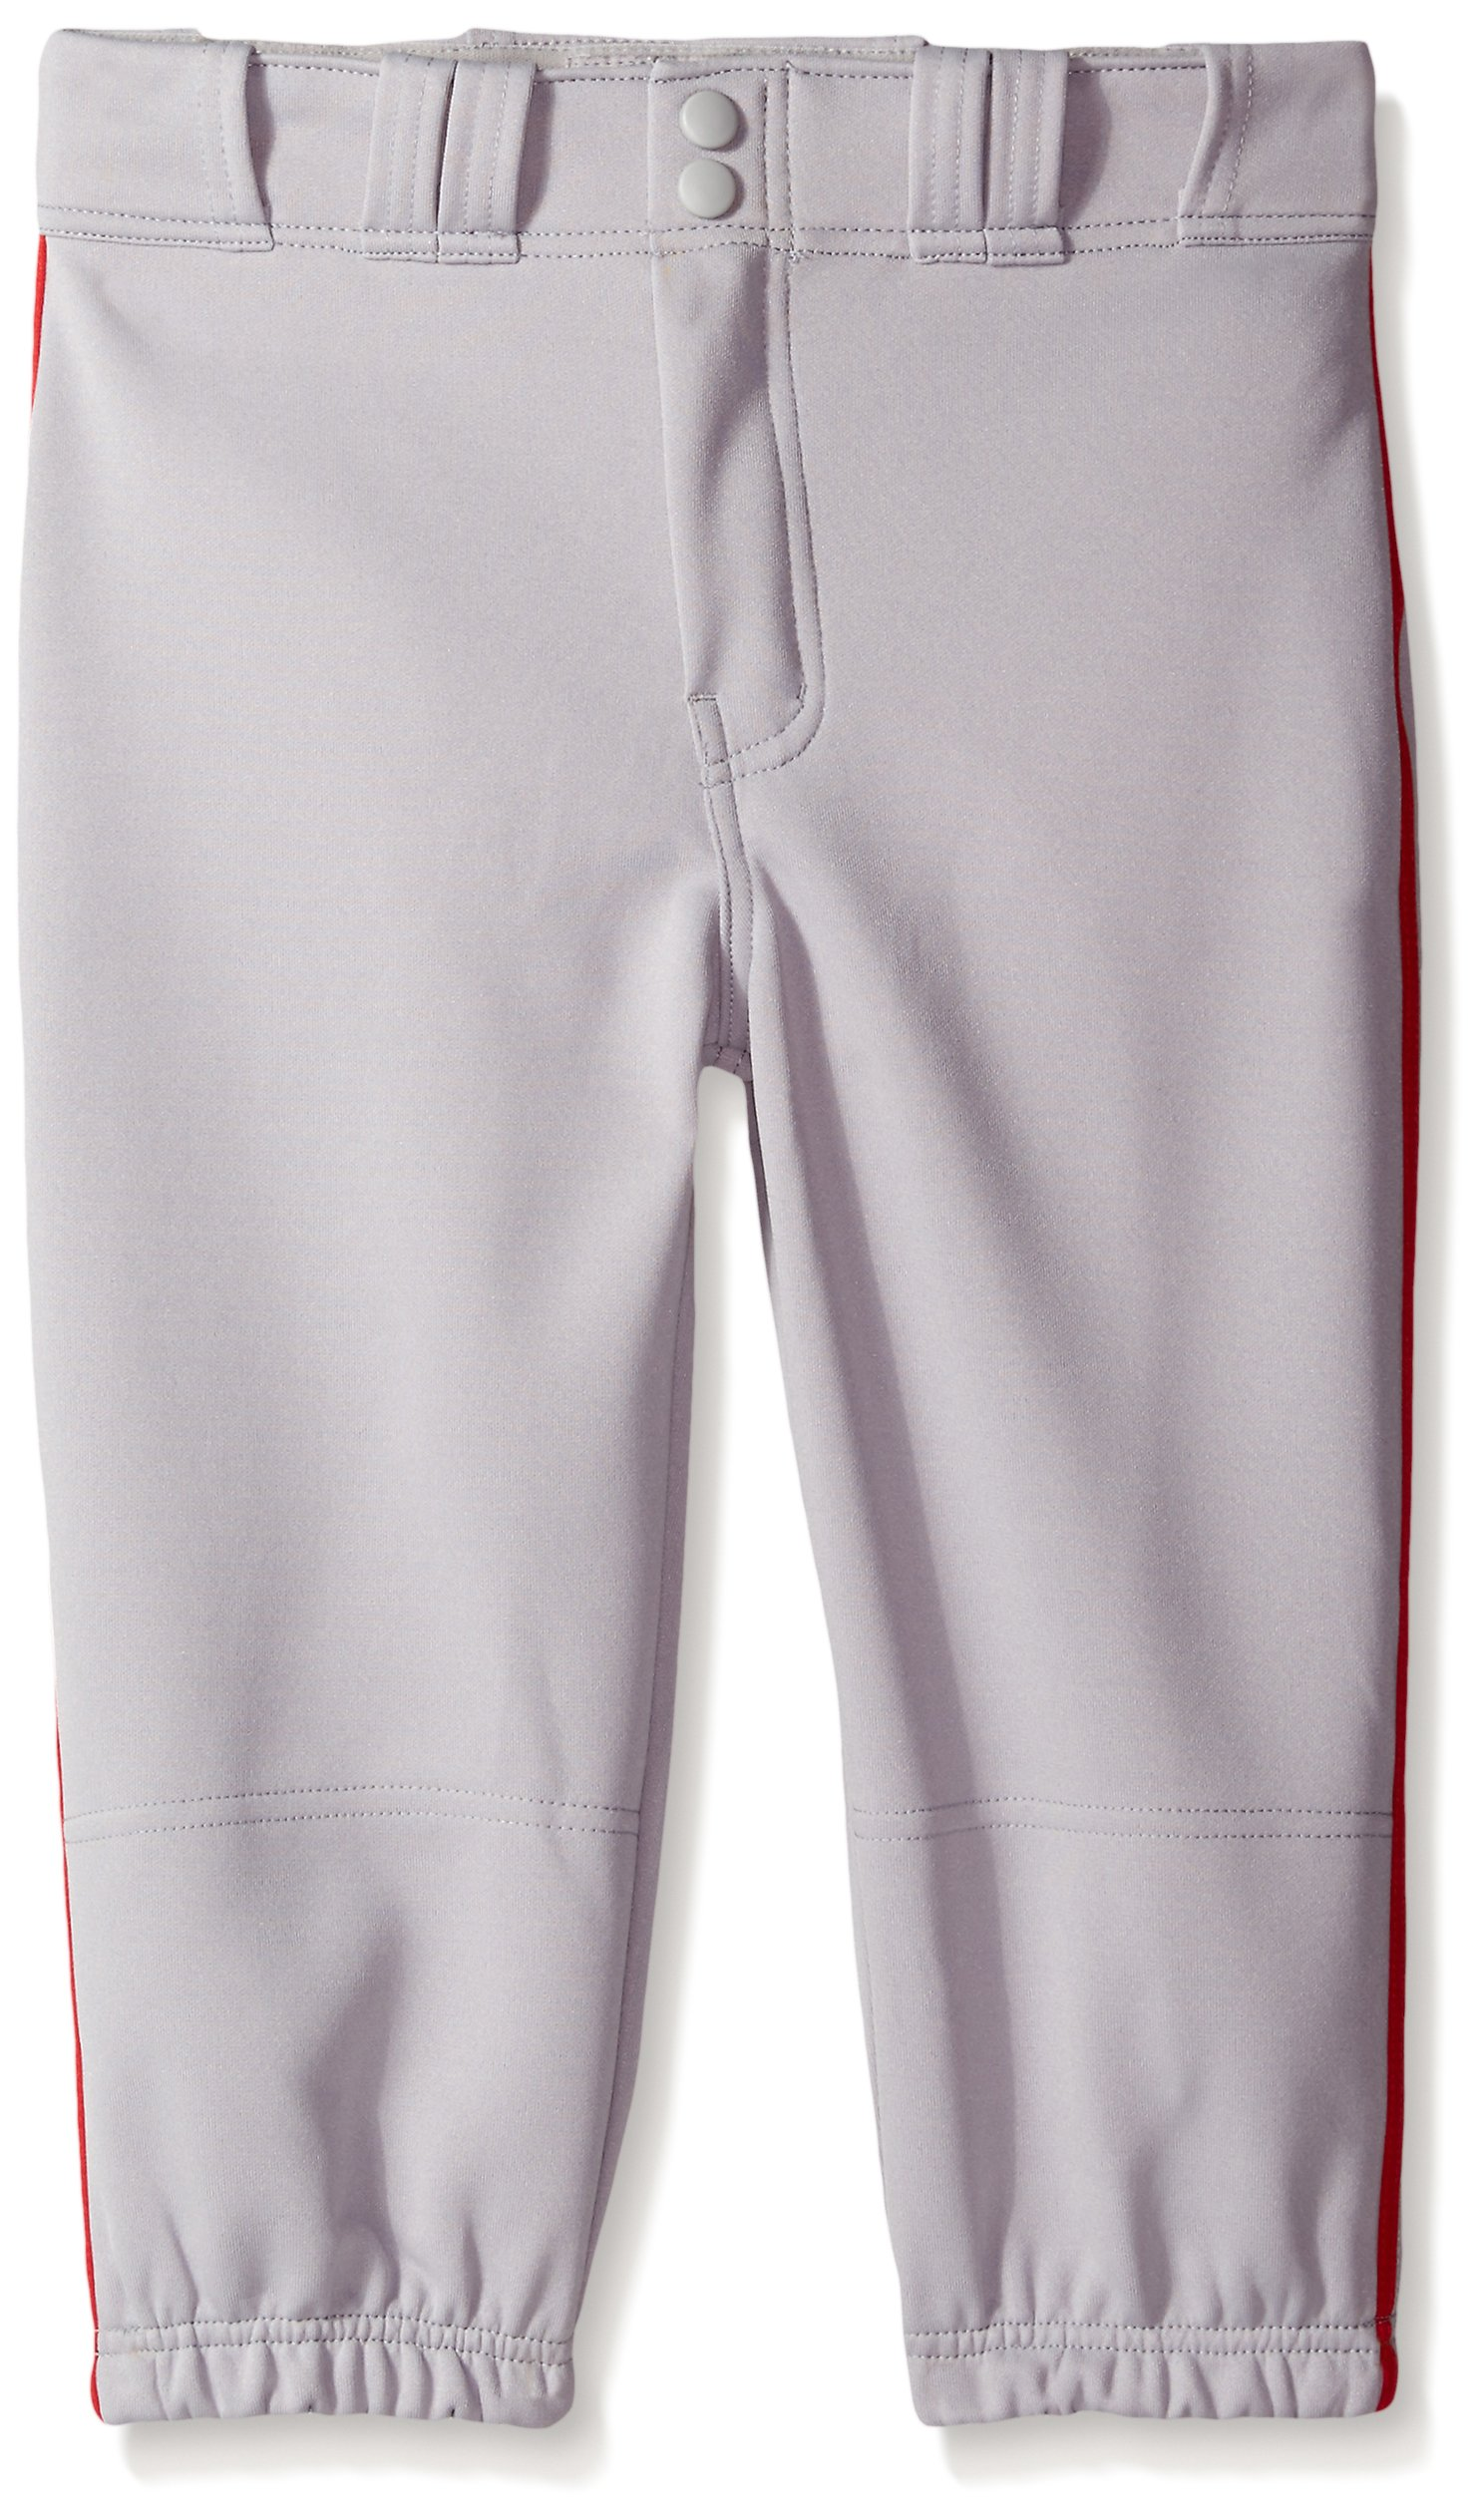 Easton Boys PRO Plus Piped Knicker, Grey/Red, Small